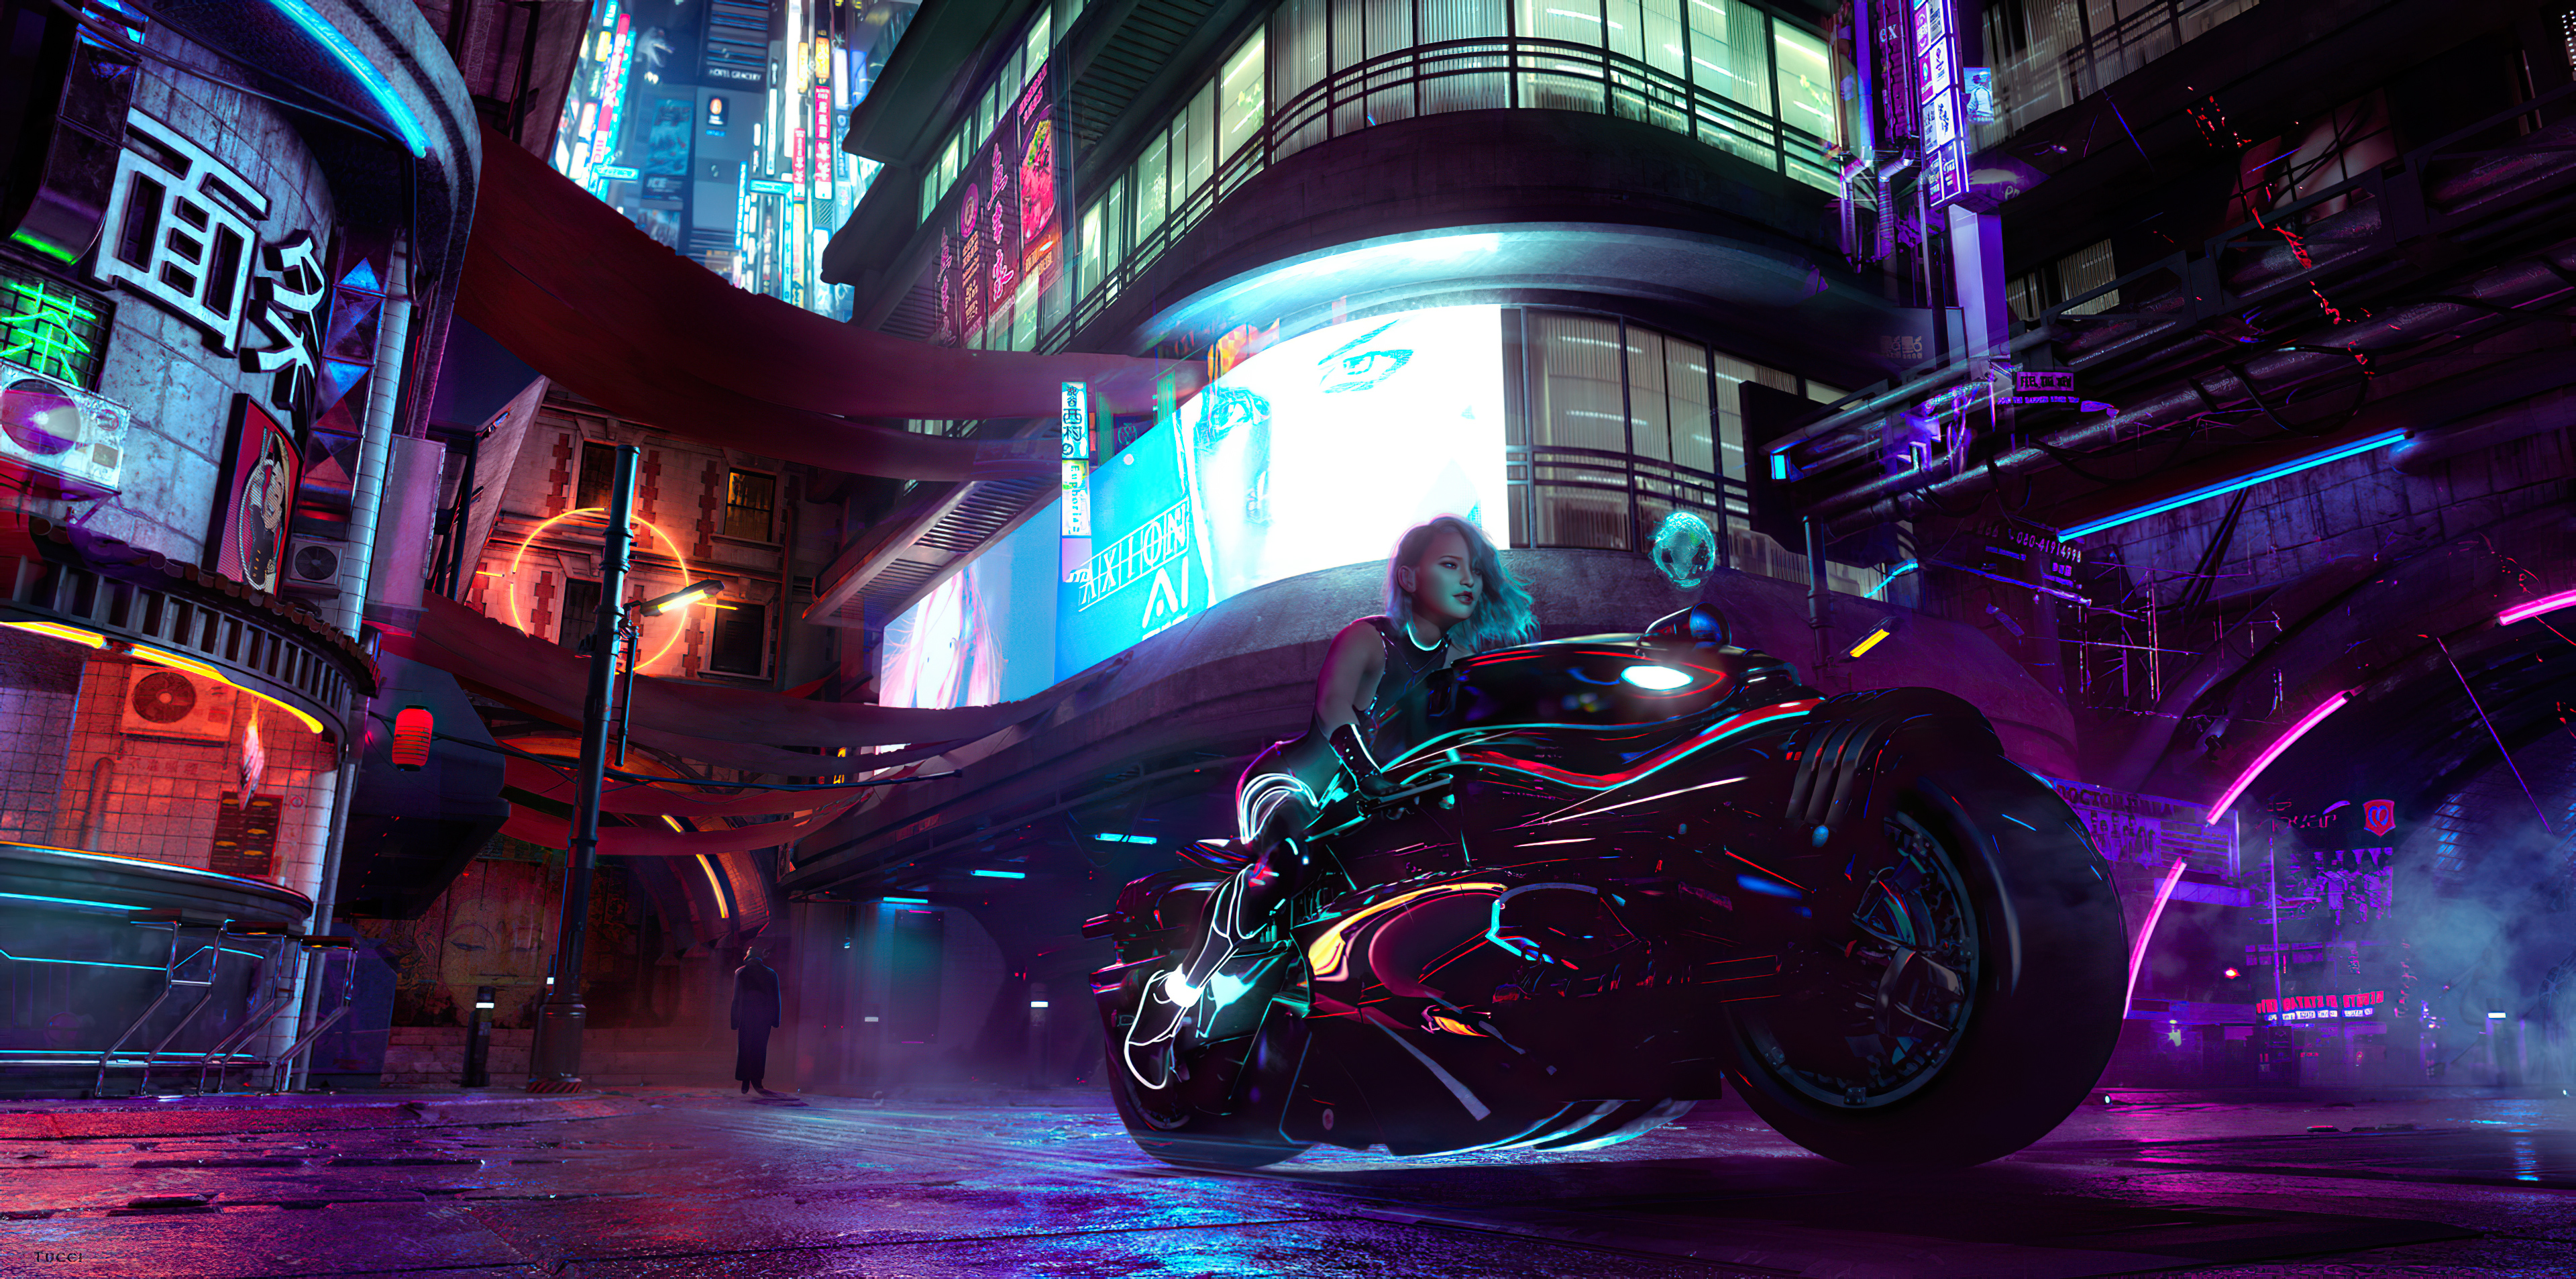 Cyberpunk Girl With Bike Wallpaper 4k Ultra Hd Id 5590